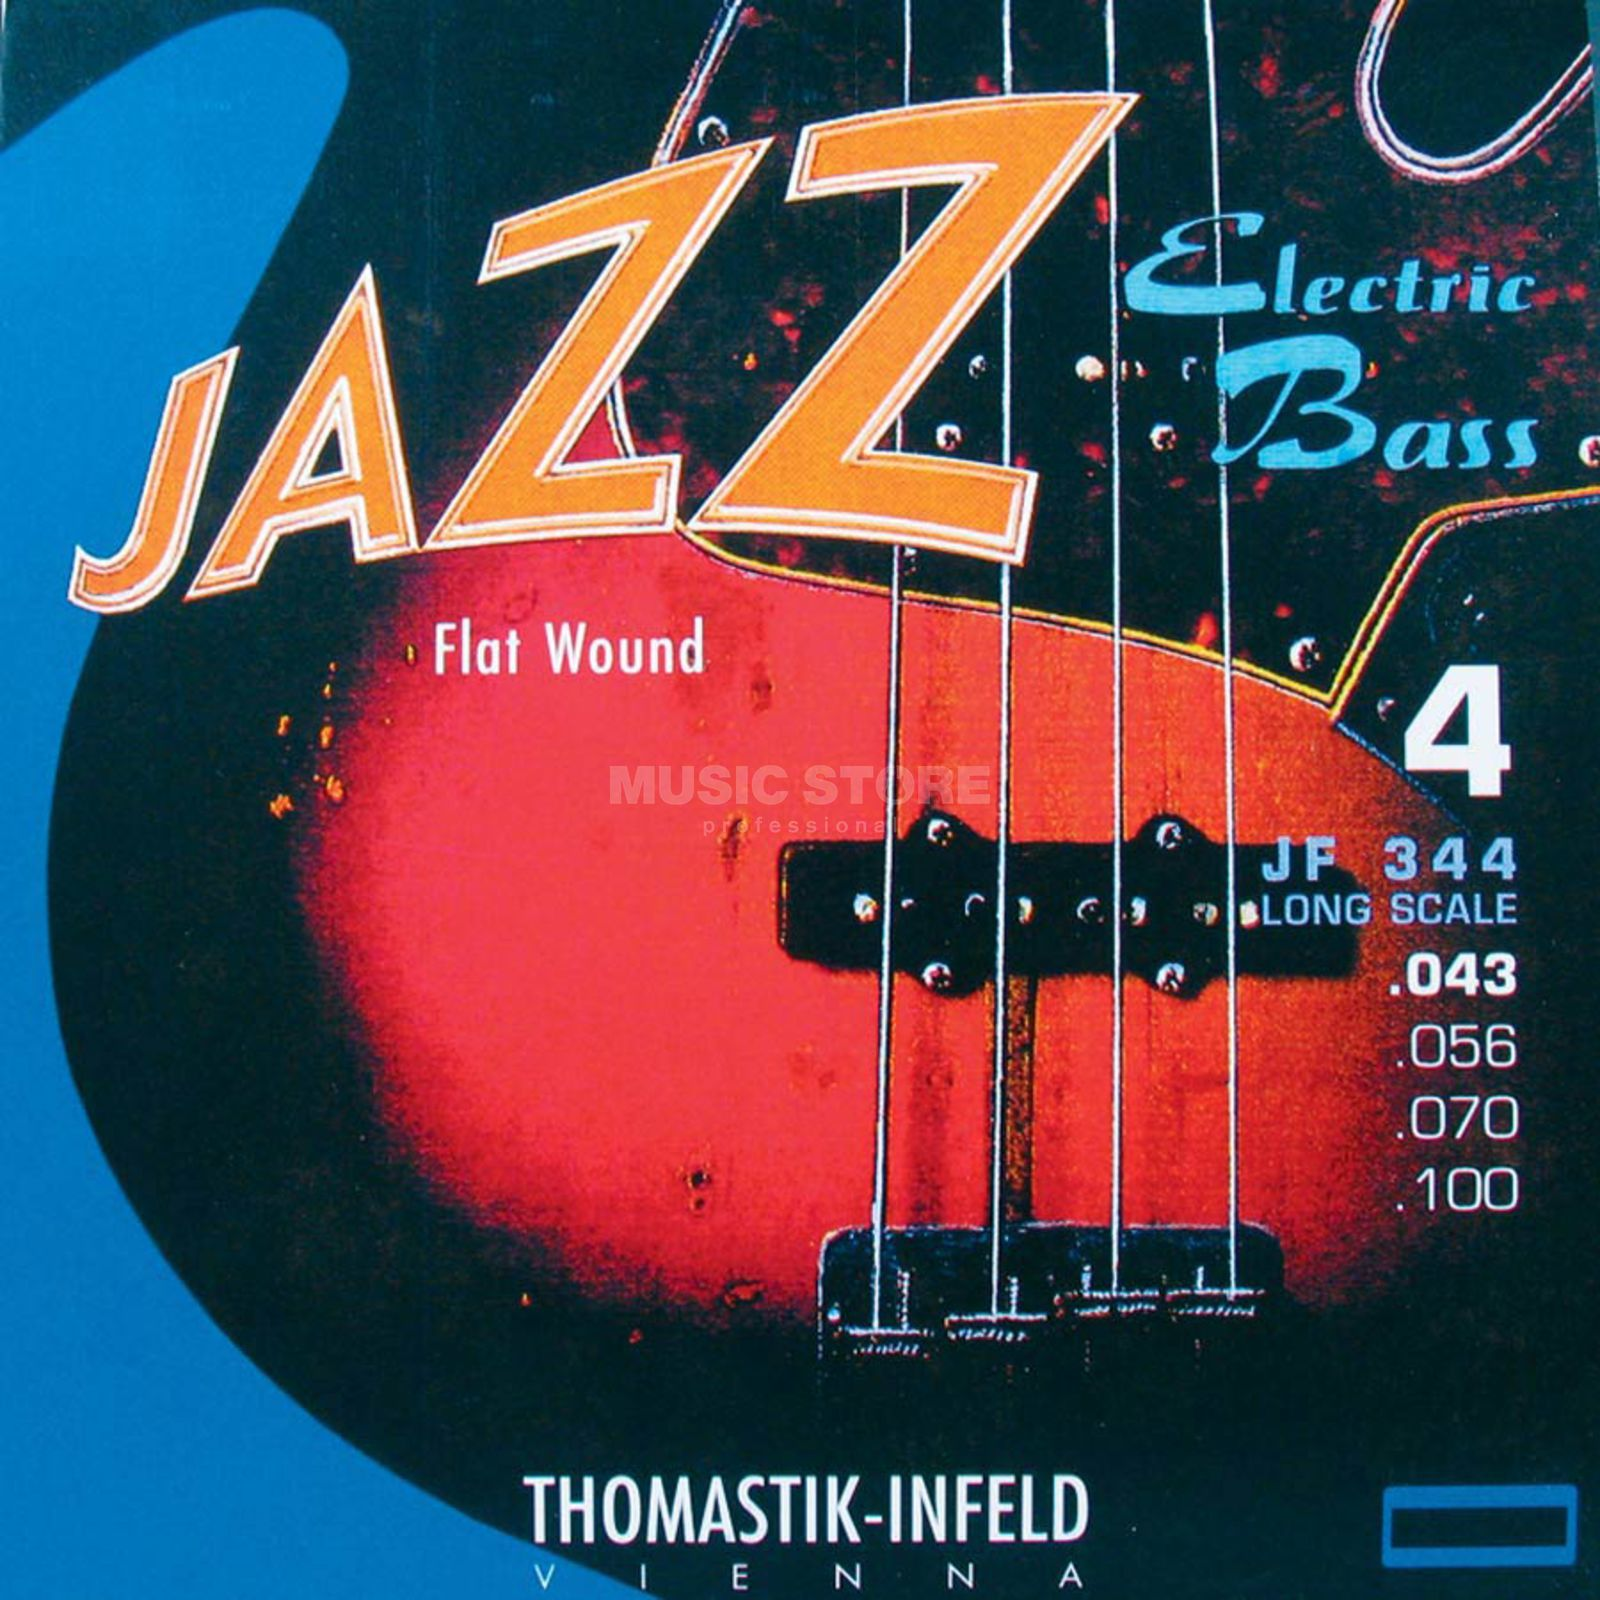 Thomastik 4 Bass Strings JF 344 43-100 Nickel Flat Wound Imagem do produto